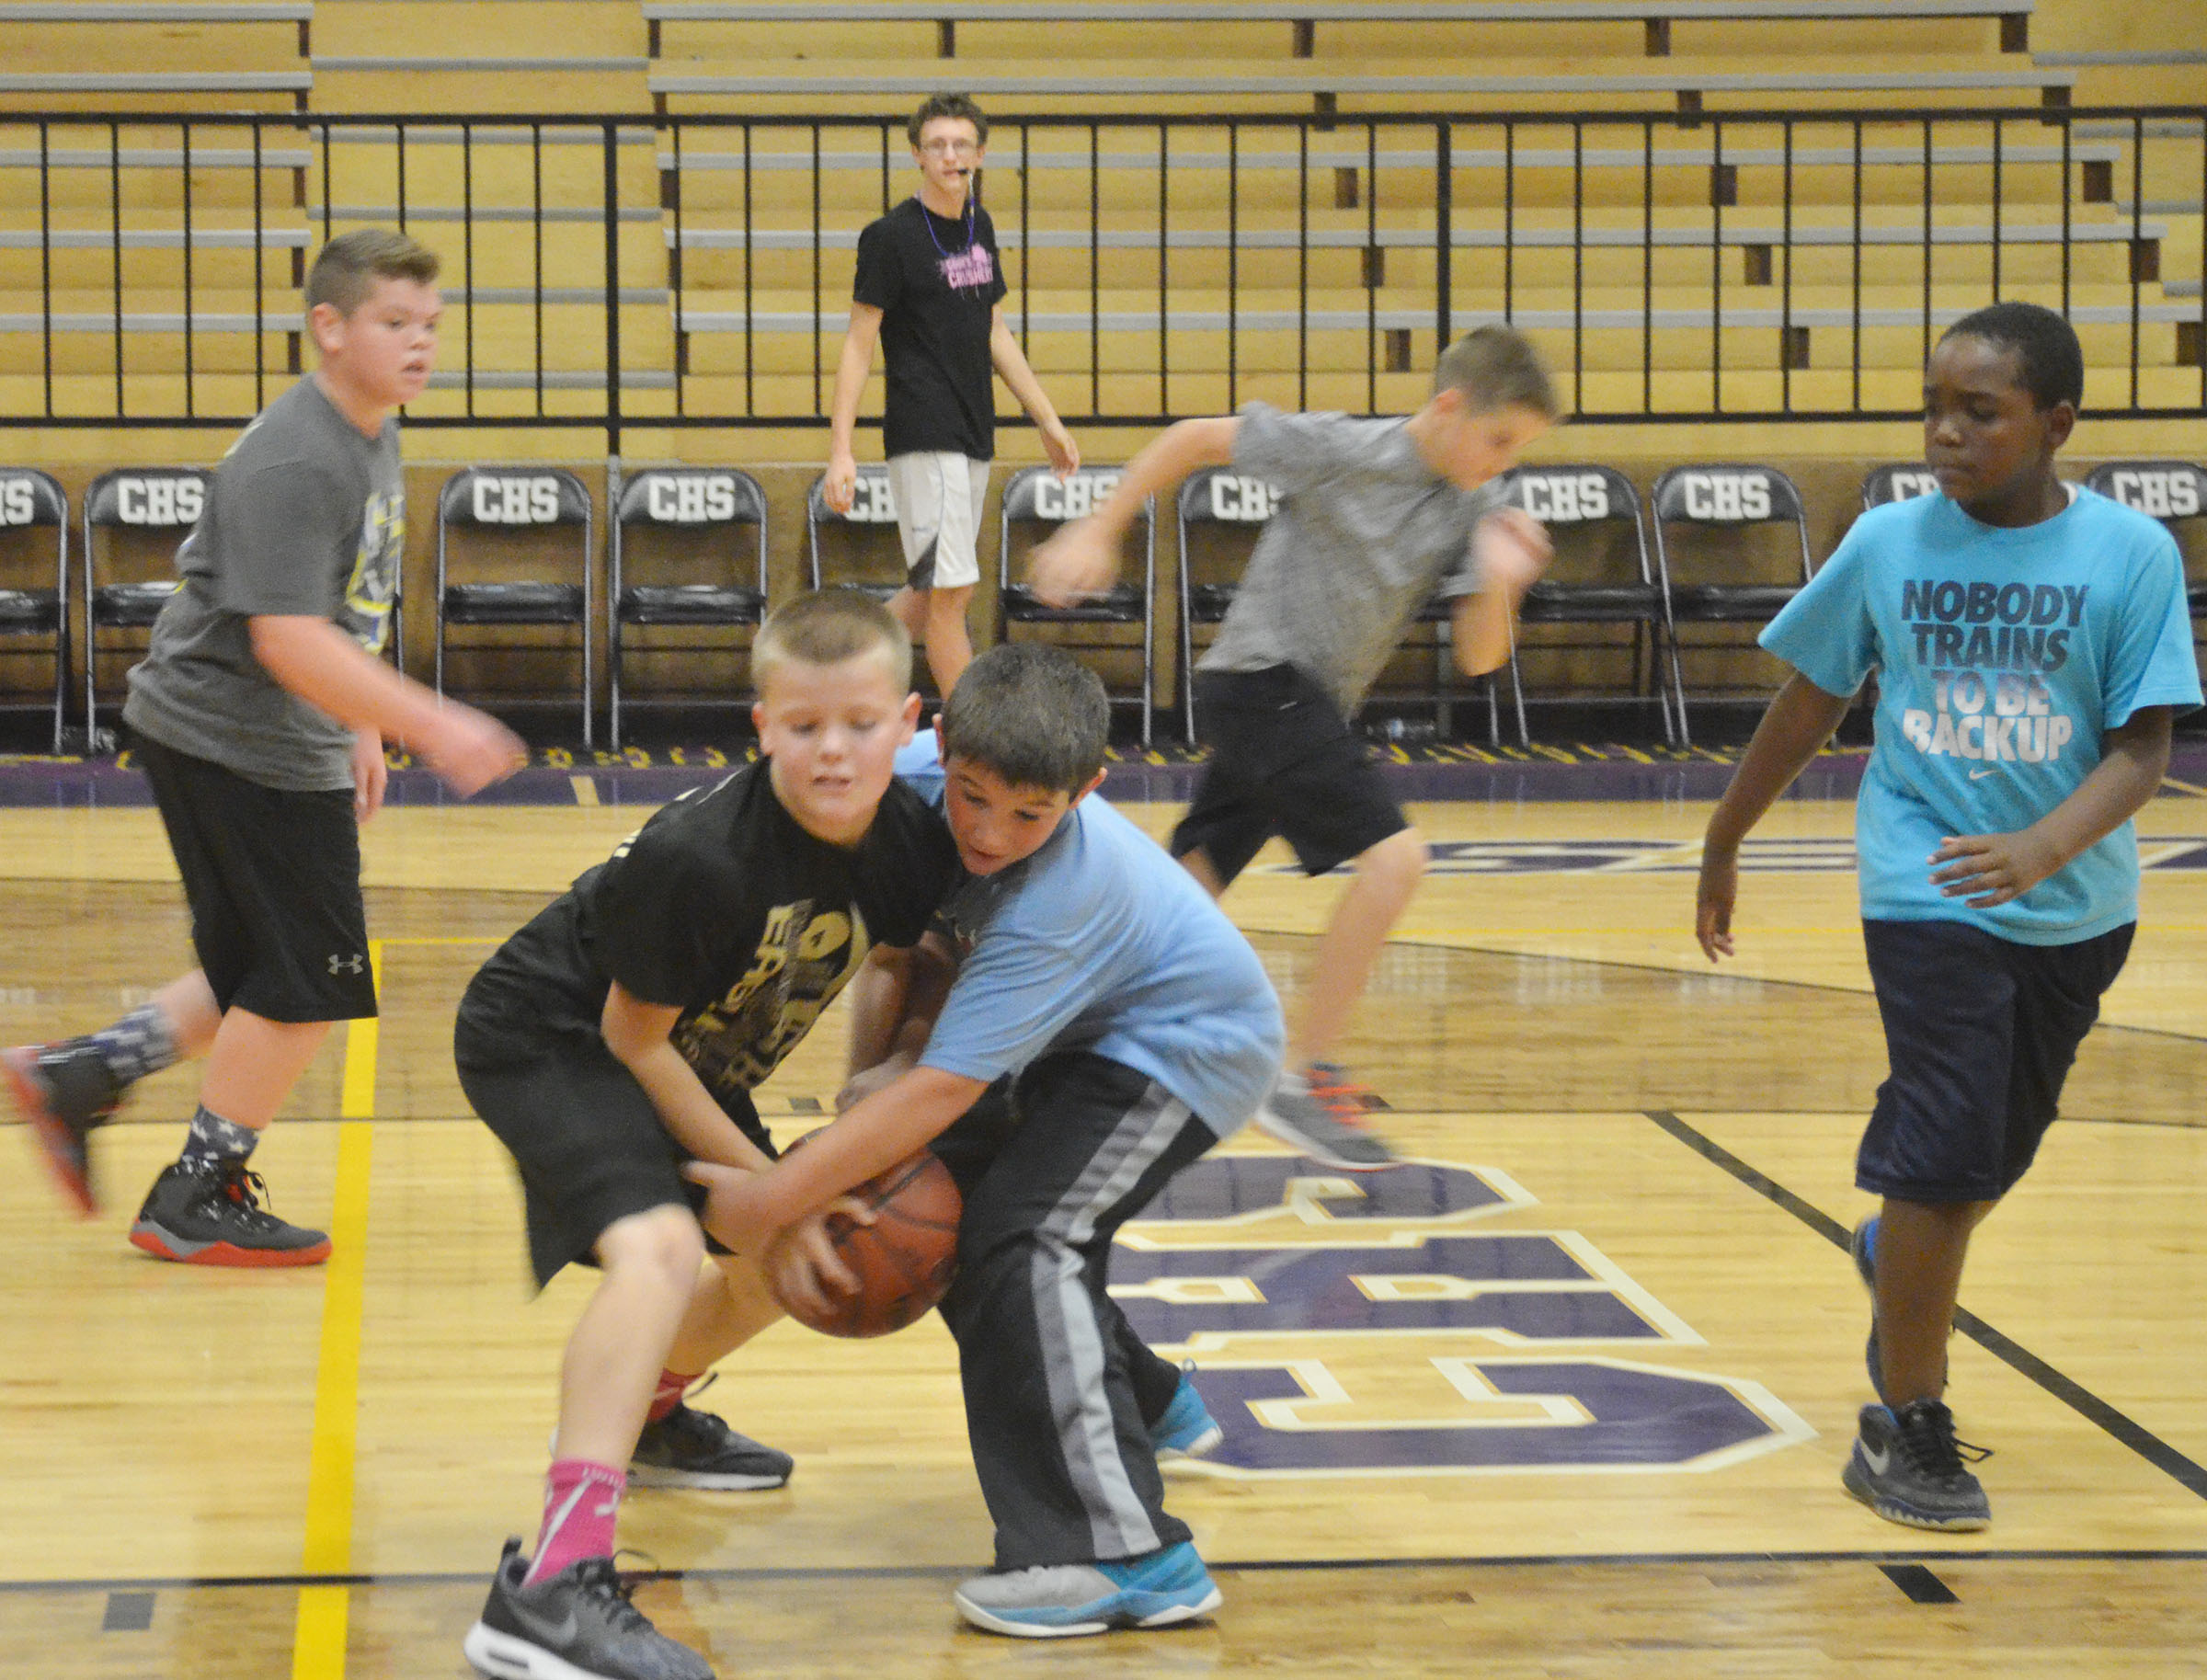 CMS sixth-grader Konner Forbis, at left, and fourth-grader Kace Eastridge battle for the ball.